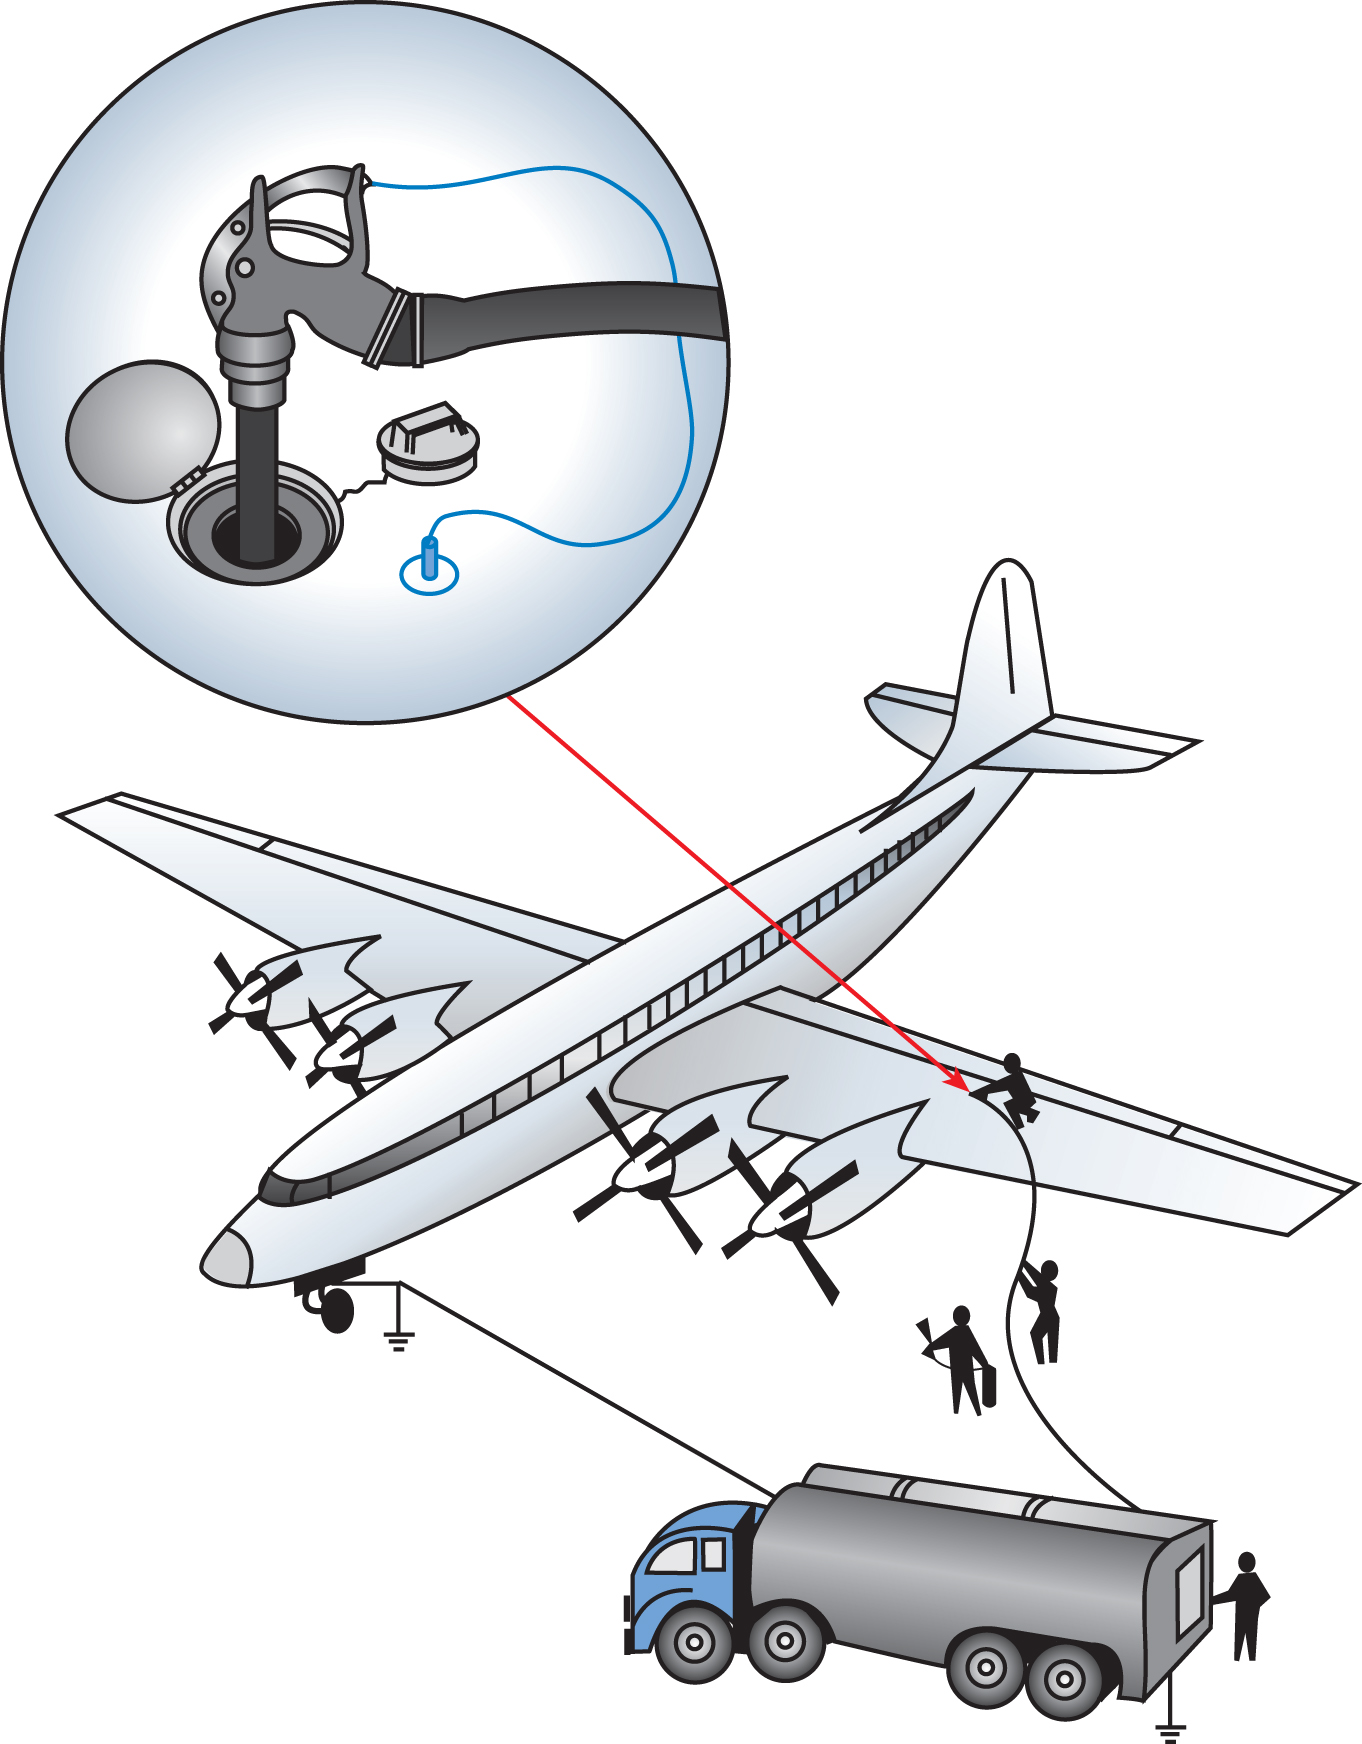 Aircraft must be electrically grounded before they are fueled. Bonding wires connect the aircraft and the fueling truck or pit together, and both of them are connected to the earth ground so that static charges that build up during fueling can pass harmlessly to ground.